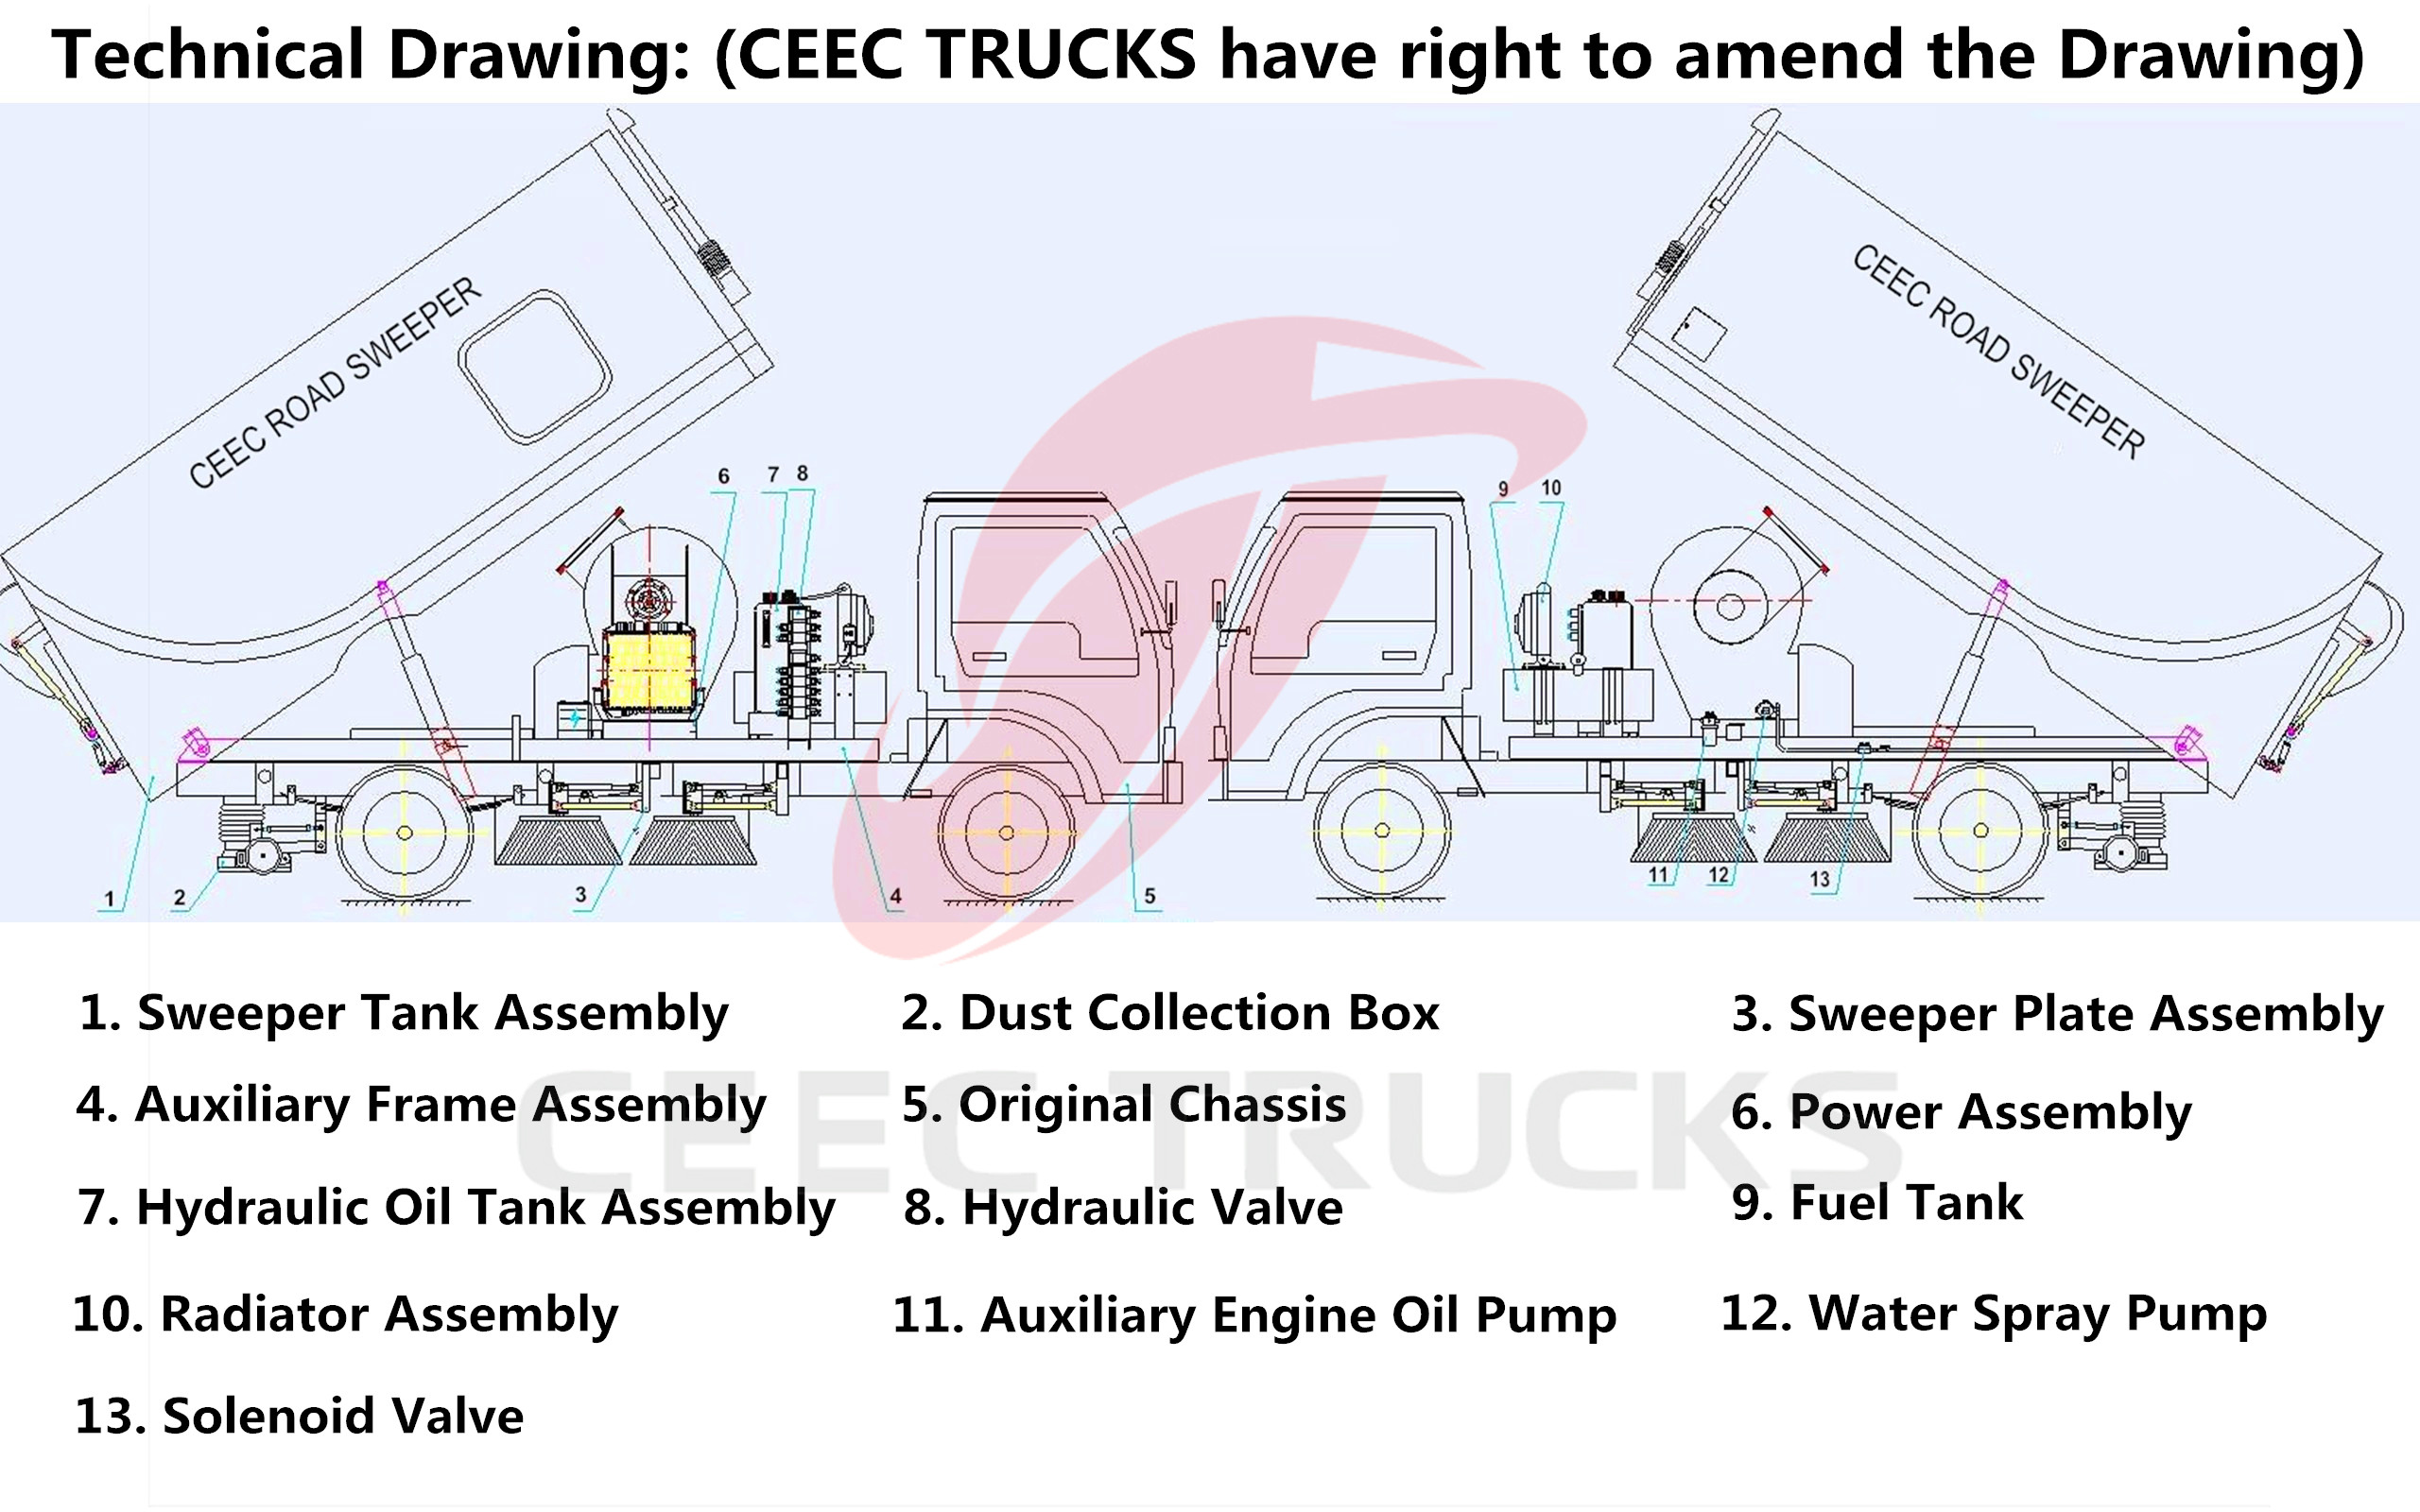 Technical drawing for CEEC road sweeper trucks